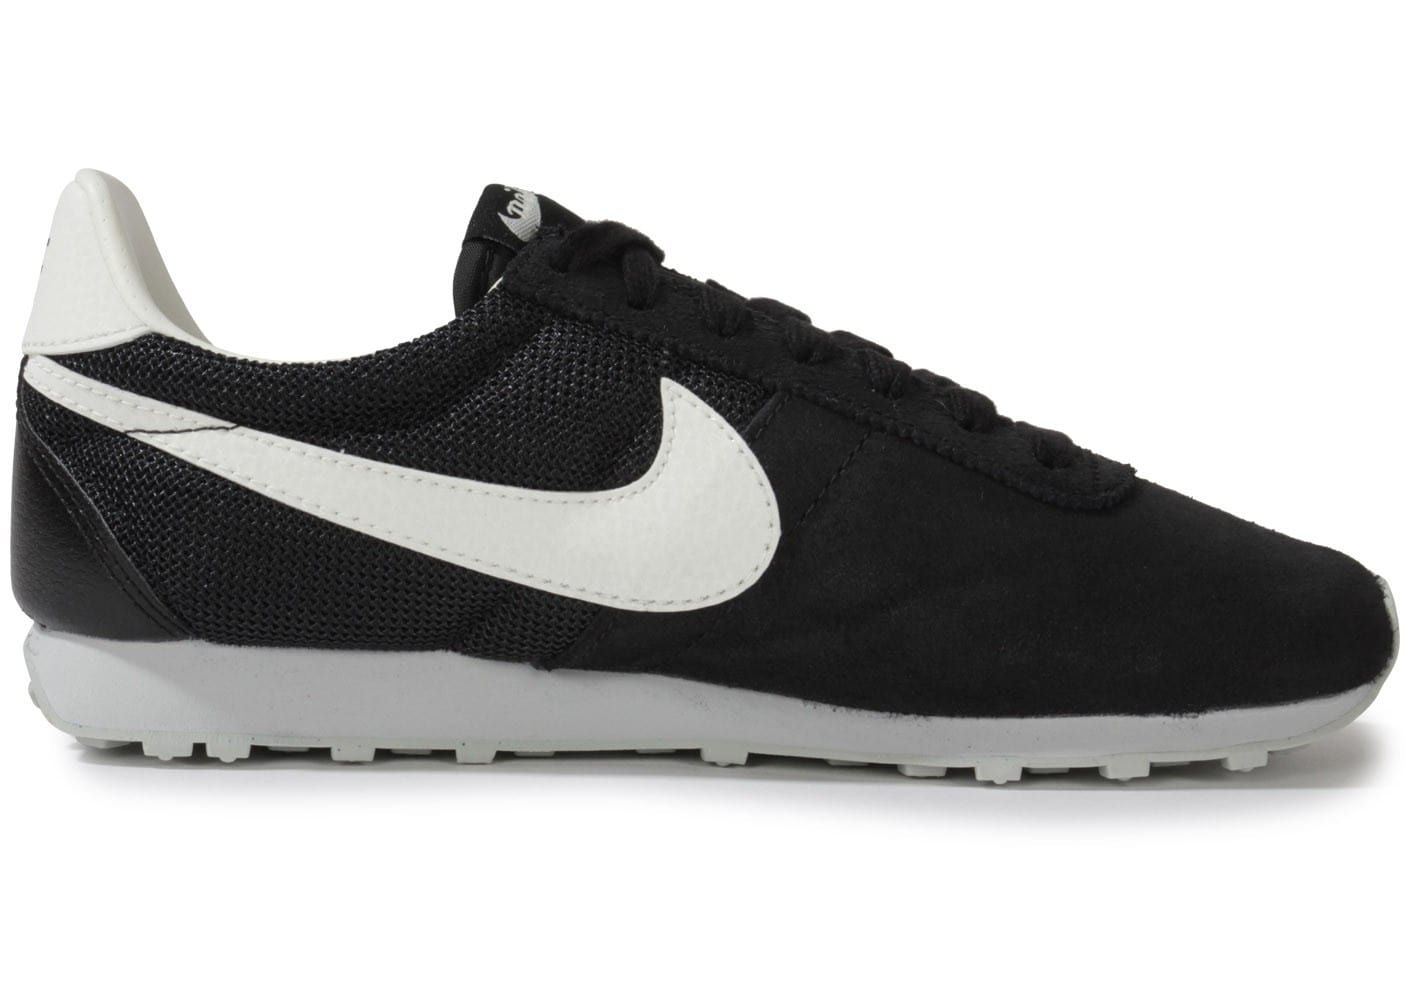 Chaussures Pre Vintage Noire Nike Montreal Racer CxBoreWQEd